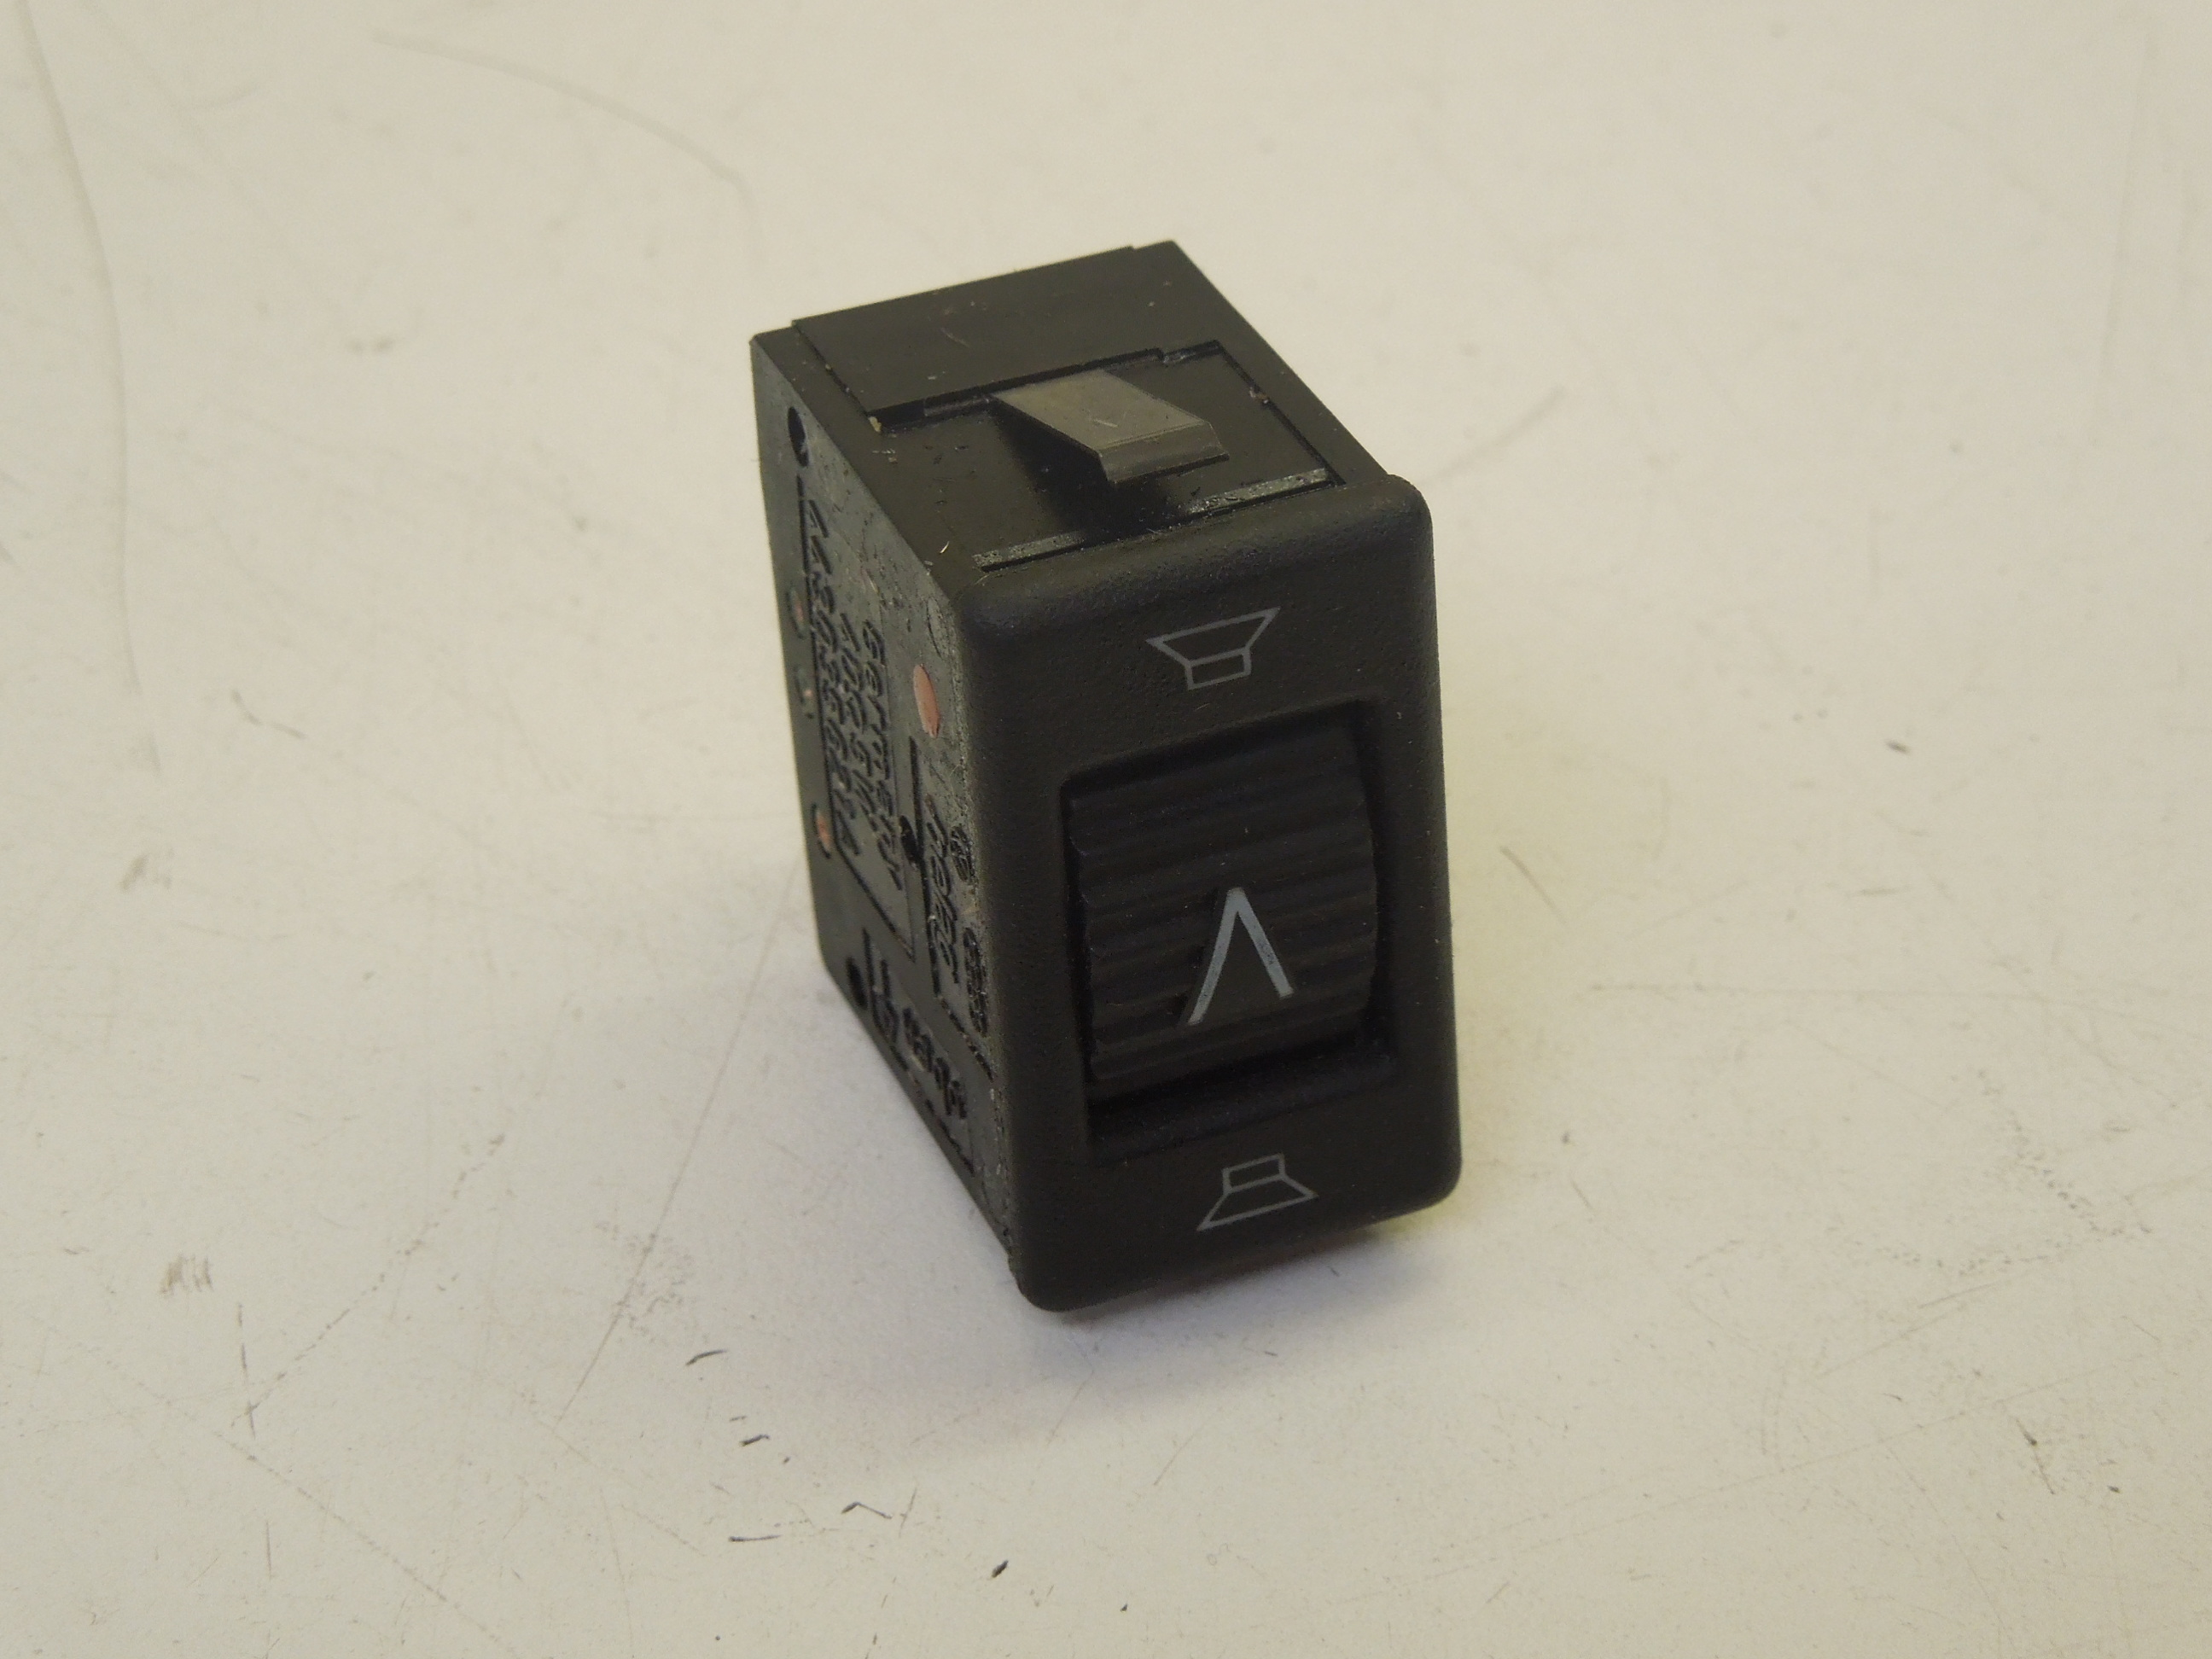 Audi-100-C3-Balance-Fader-Speaker-Switch-Roller-Button-443035621A